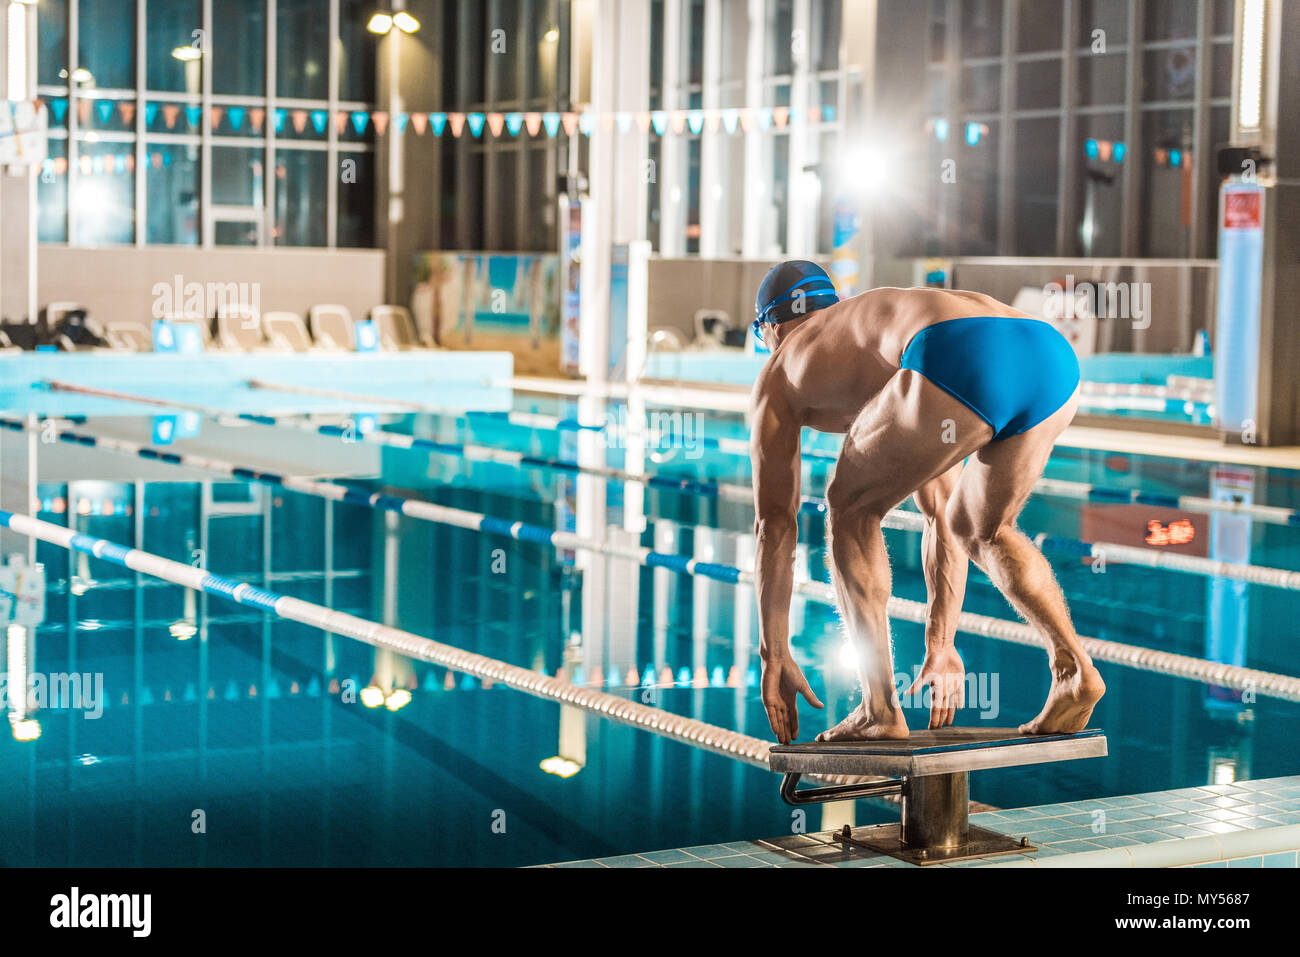 swimmer standing on diving board ready to jump into competition swimming pool - Stock Image